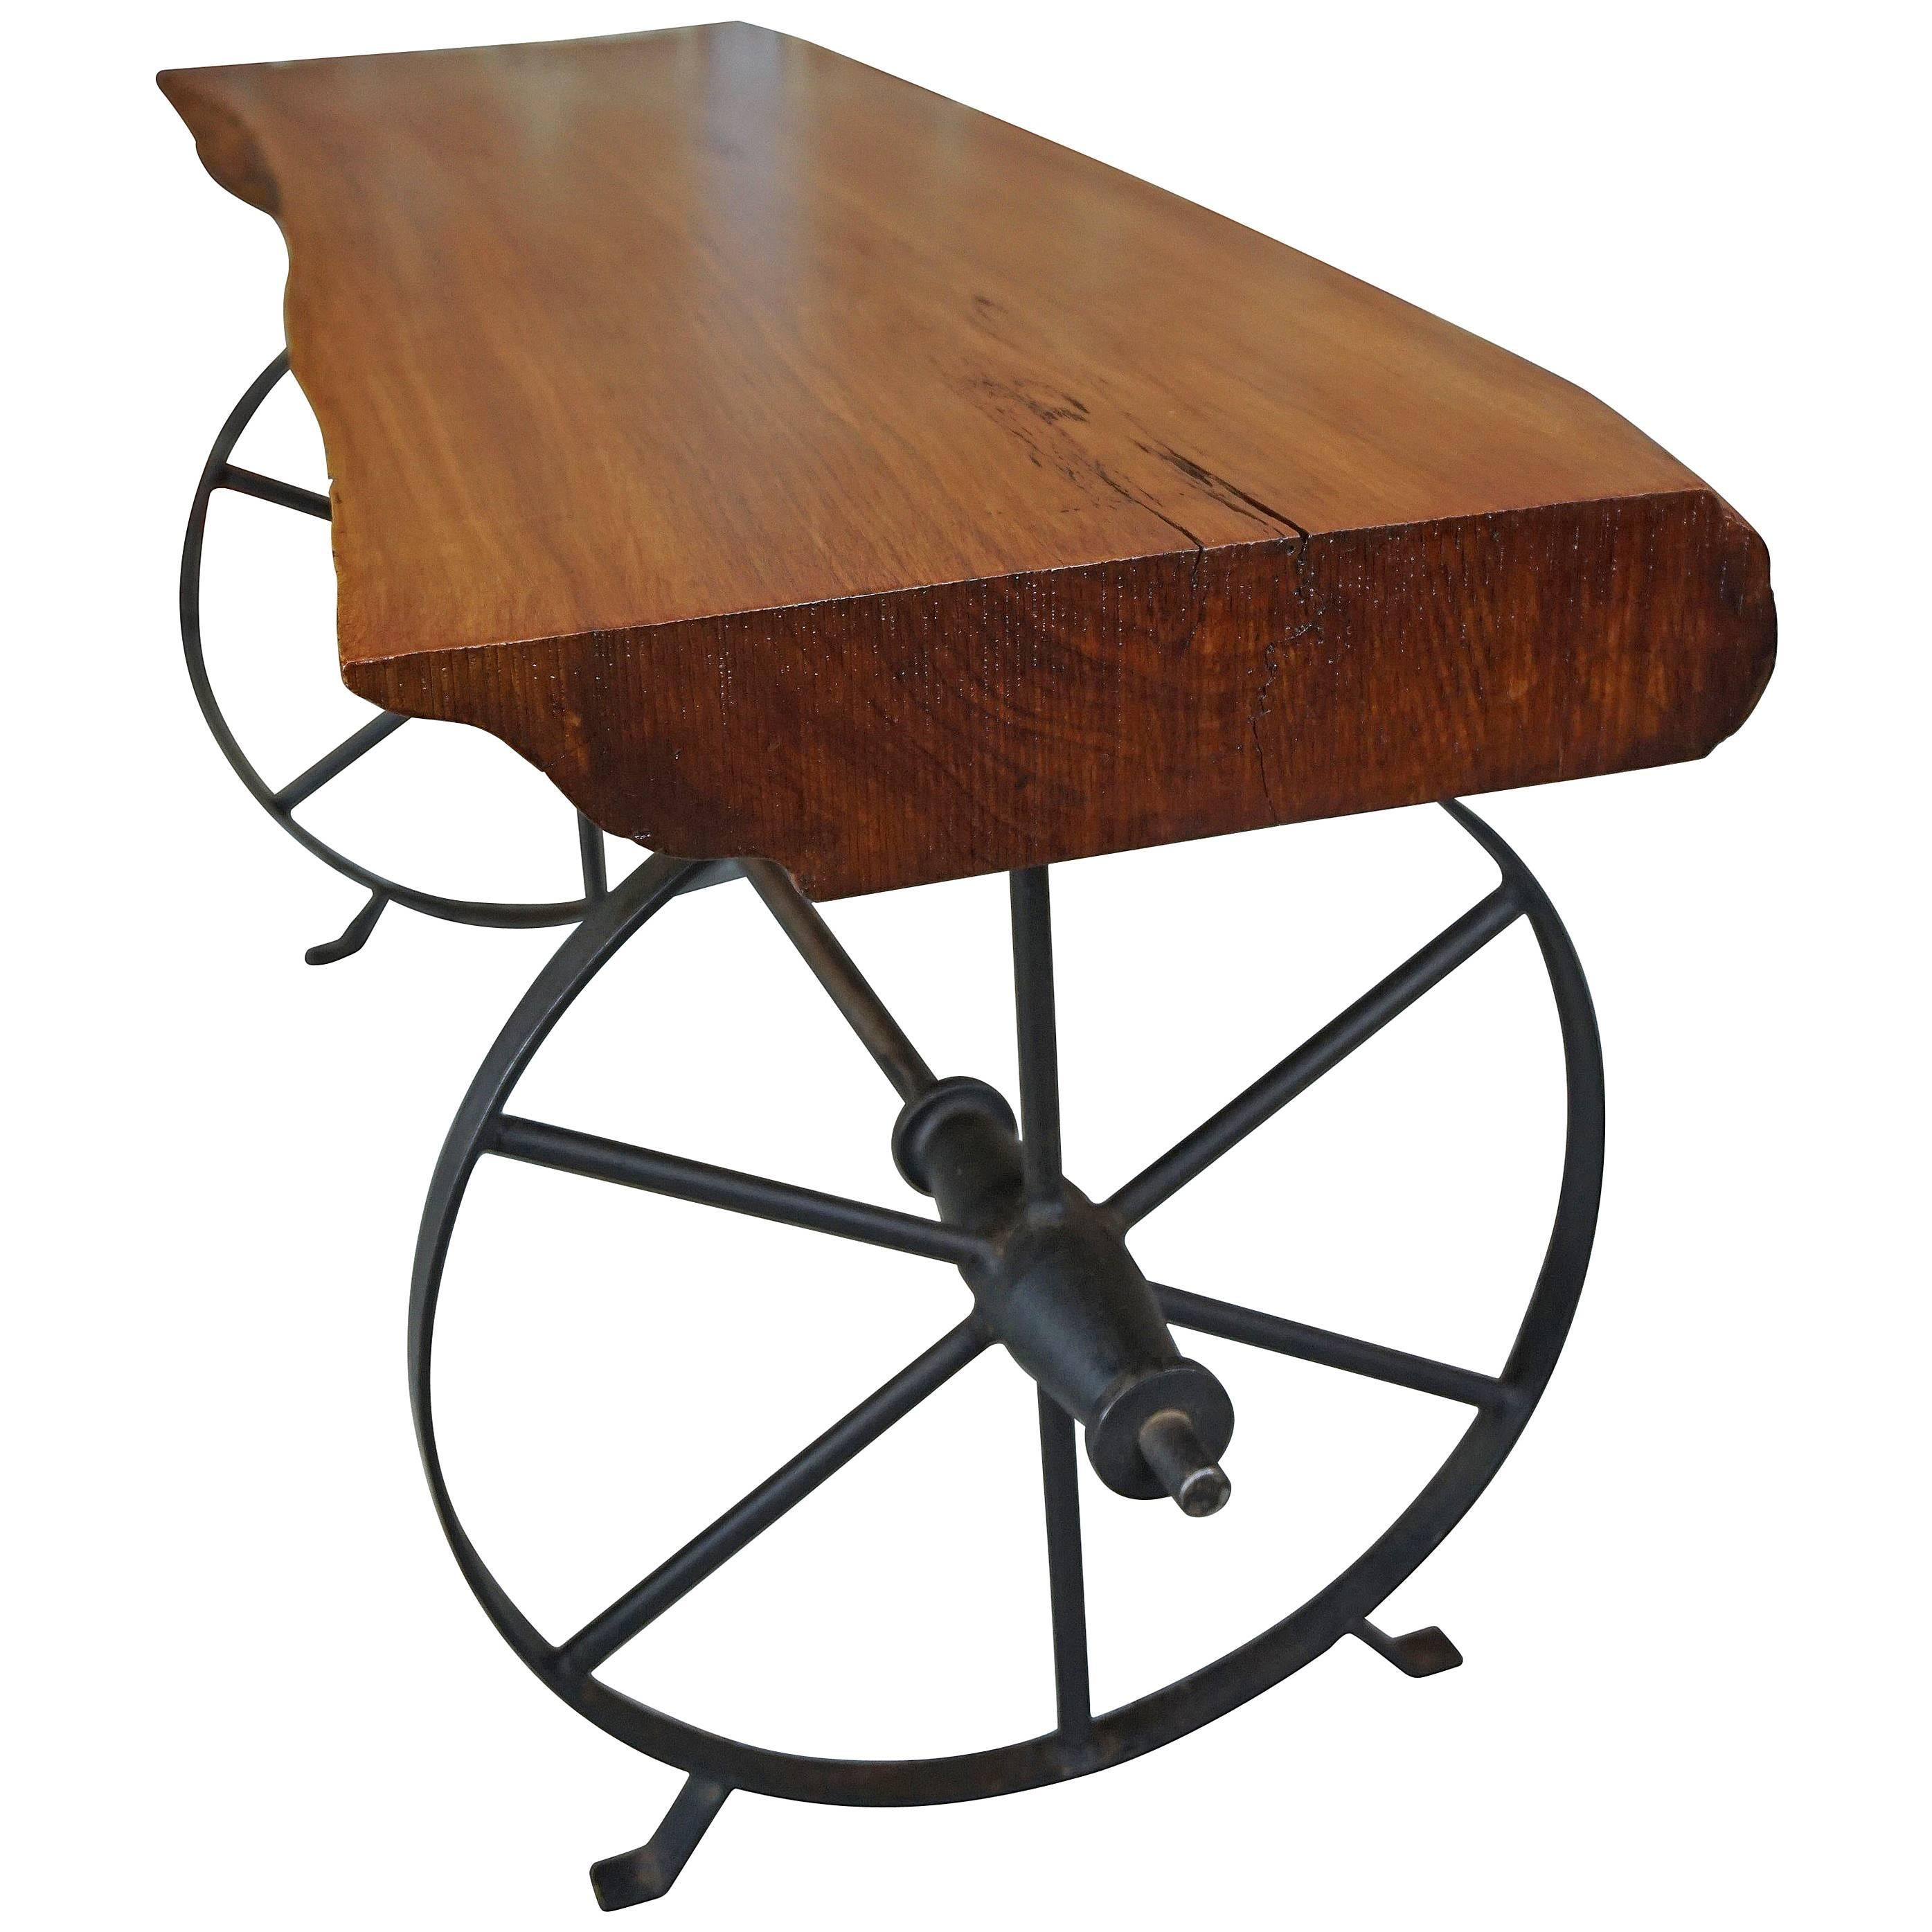 Solid Wood and Iron French Design of the 1950 Coffee Table